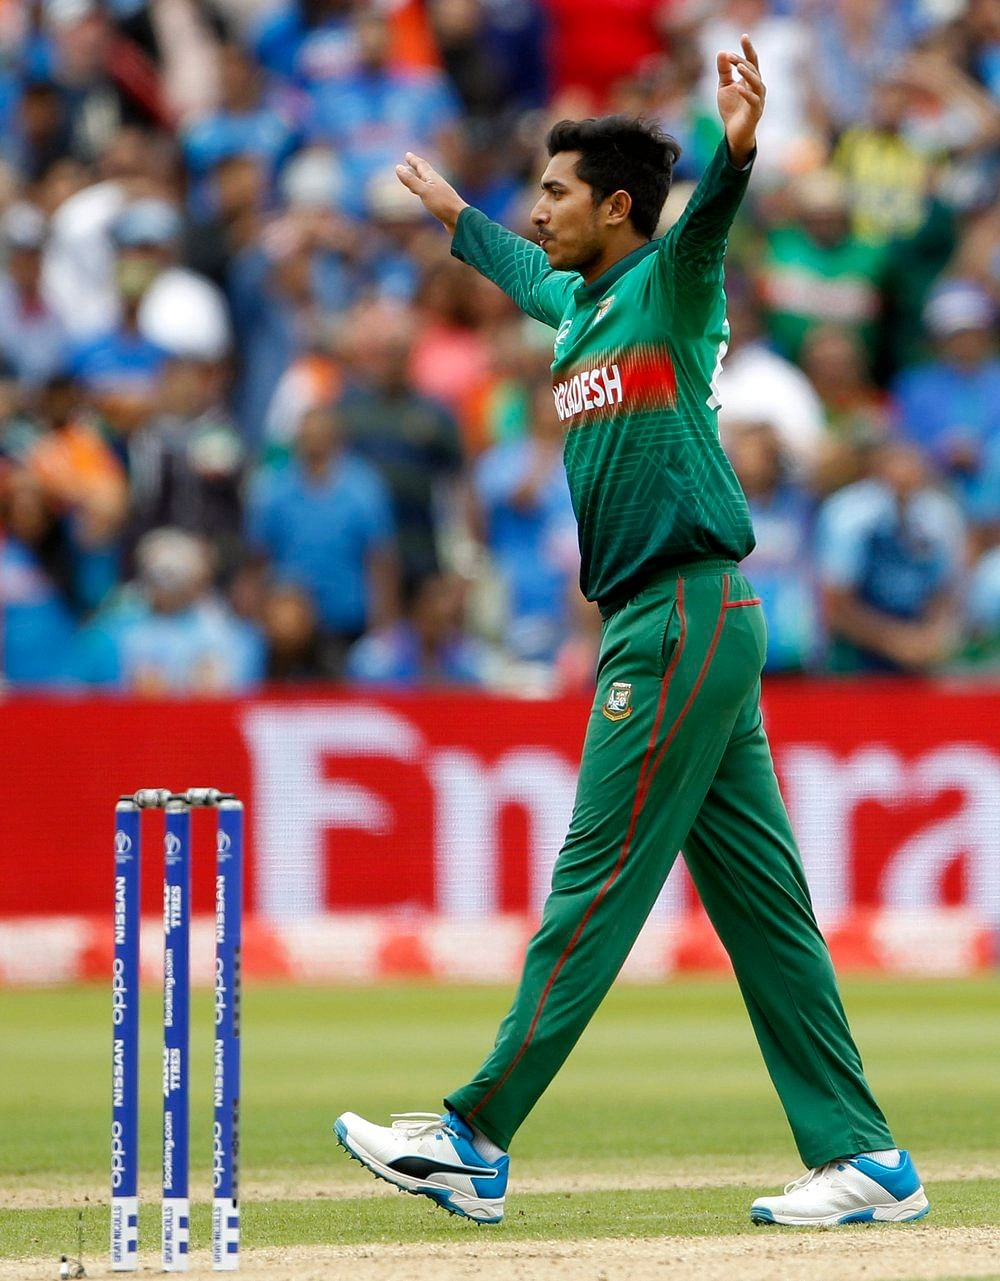 Bangladesh's Soumya Sarkar celebrates the dismissal of Rohit Sharma during a match against India in ICC CWC 2019 at Edgbaston in Birmingham on Tuesday